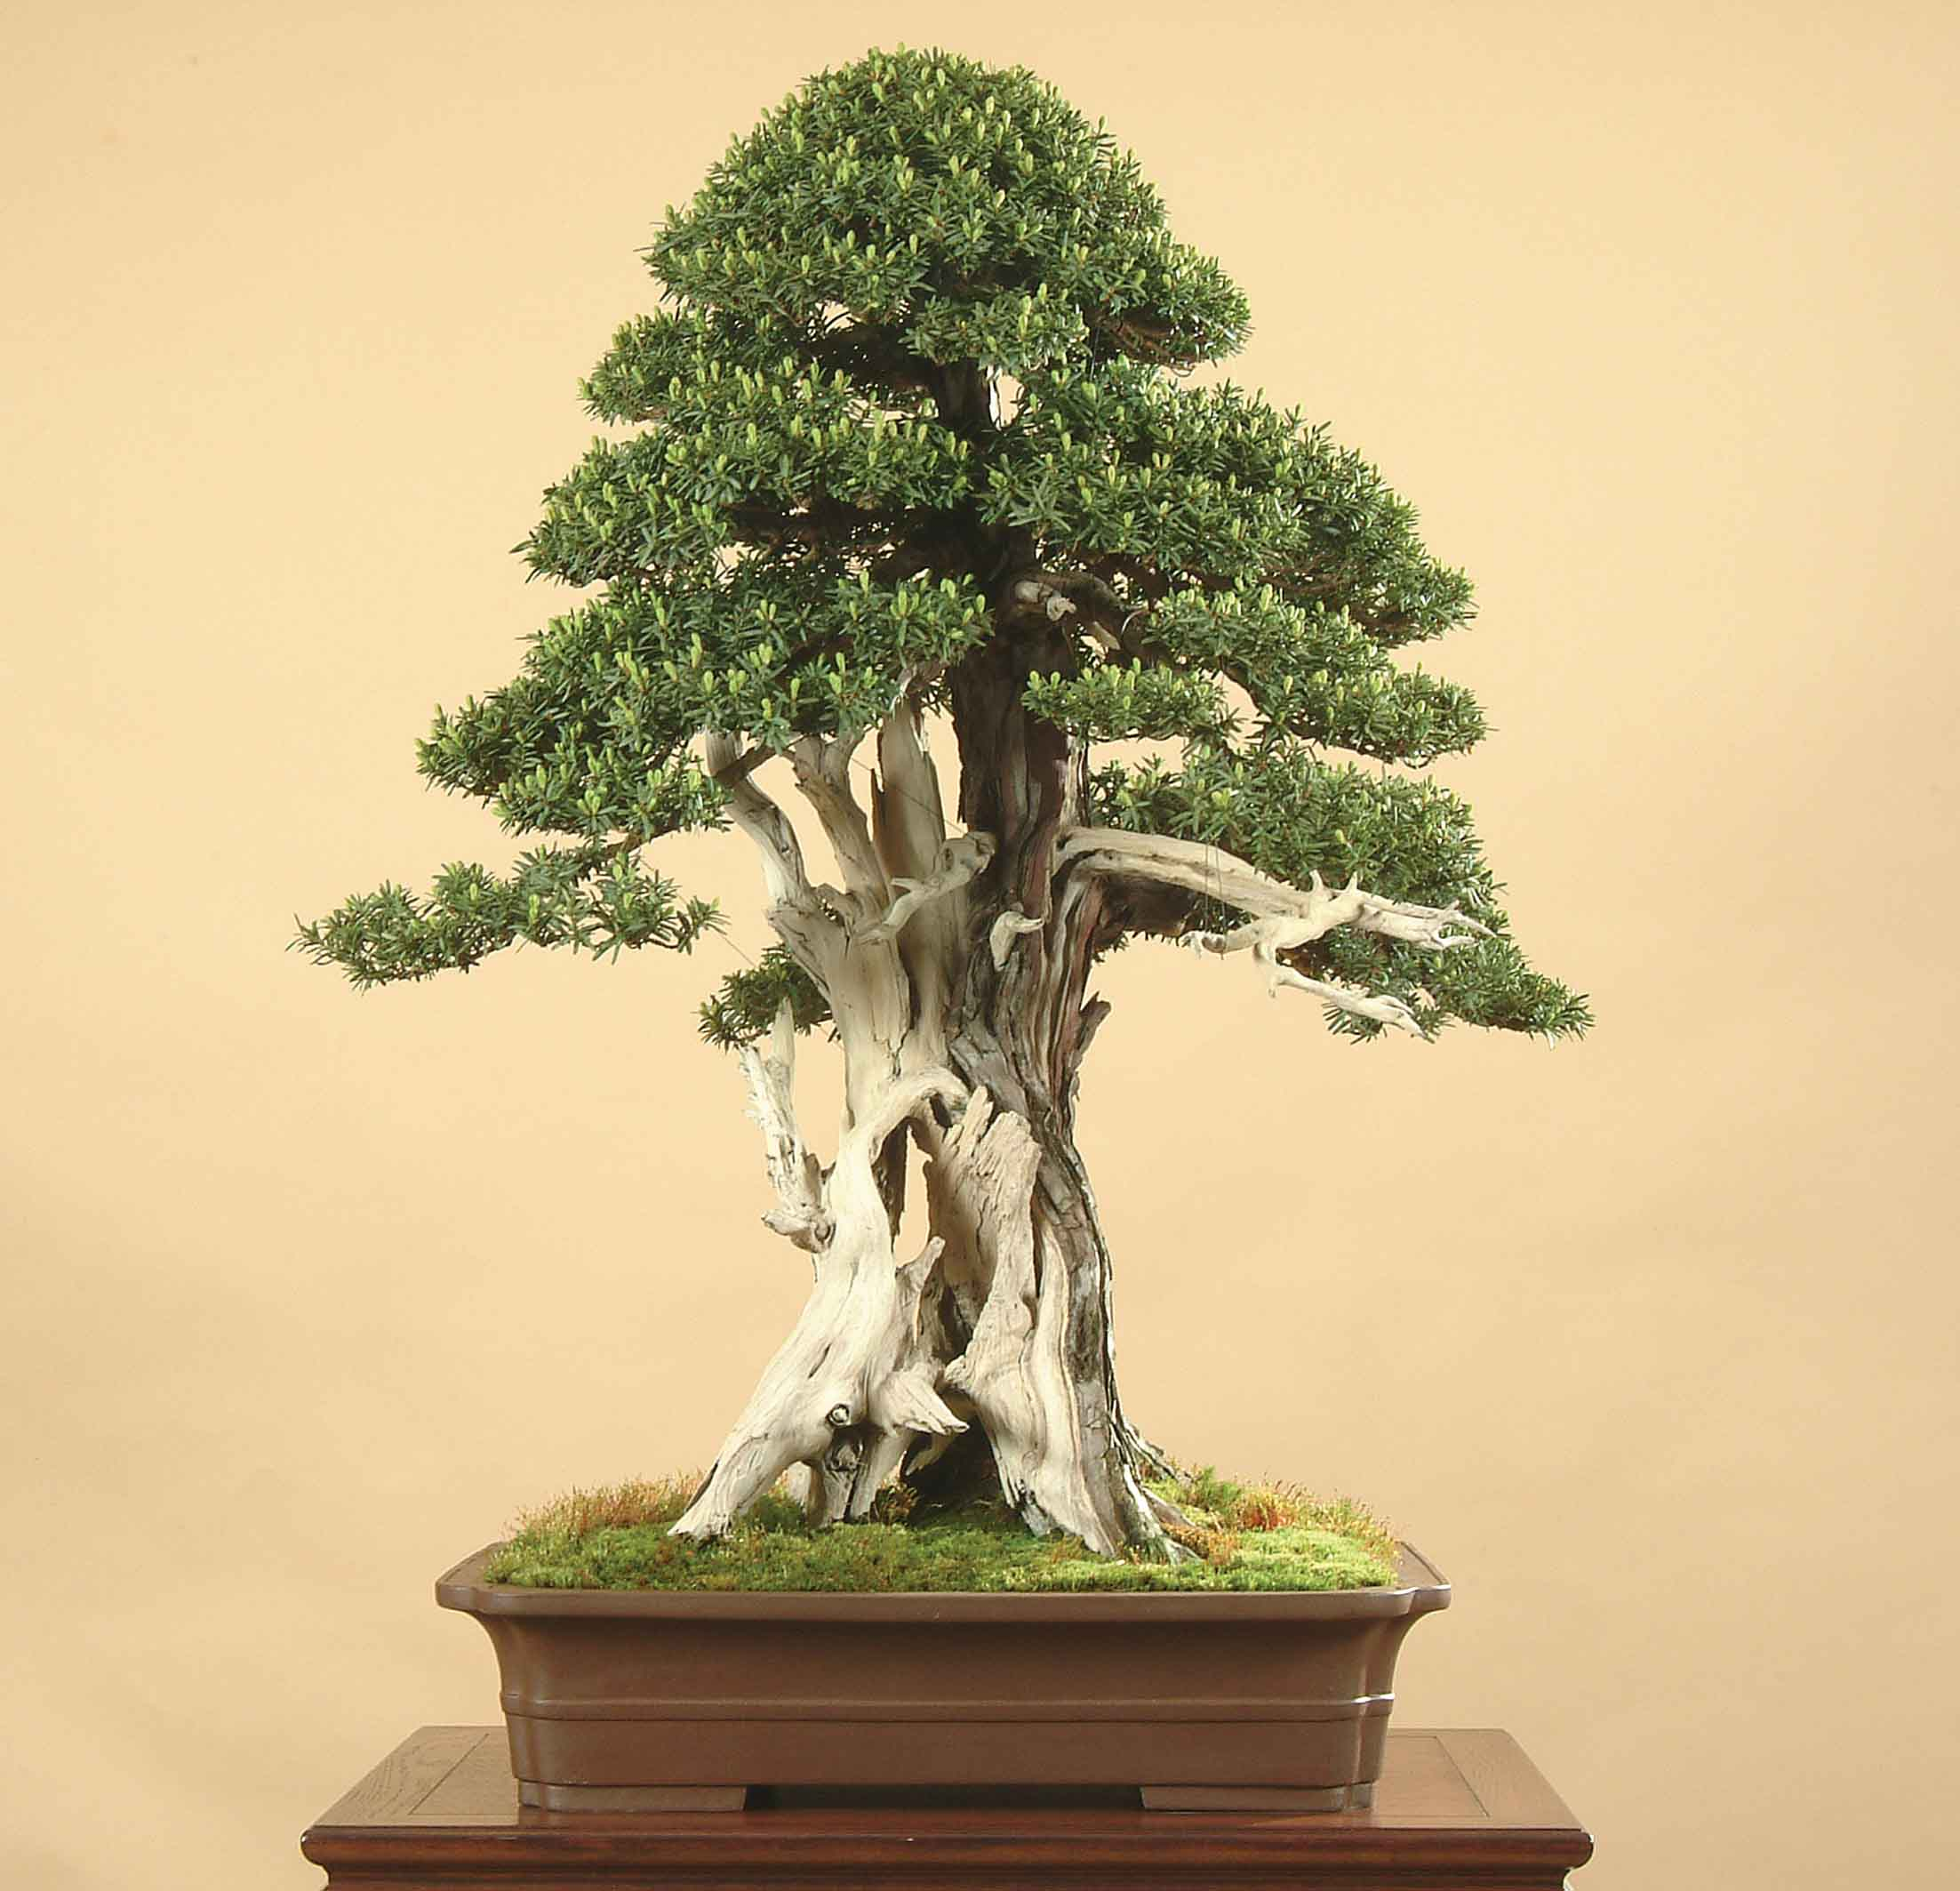 Feng Shui & Bonsai Trees